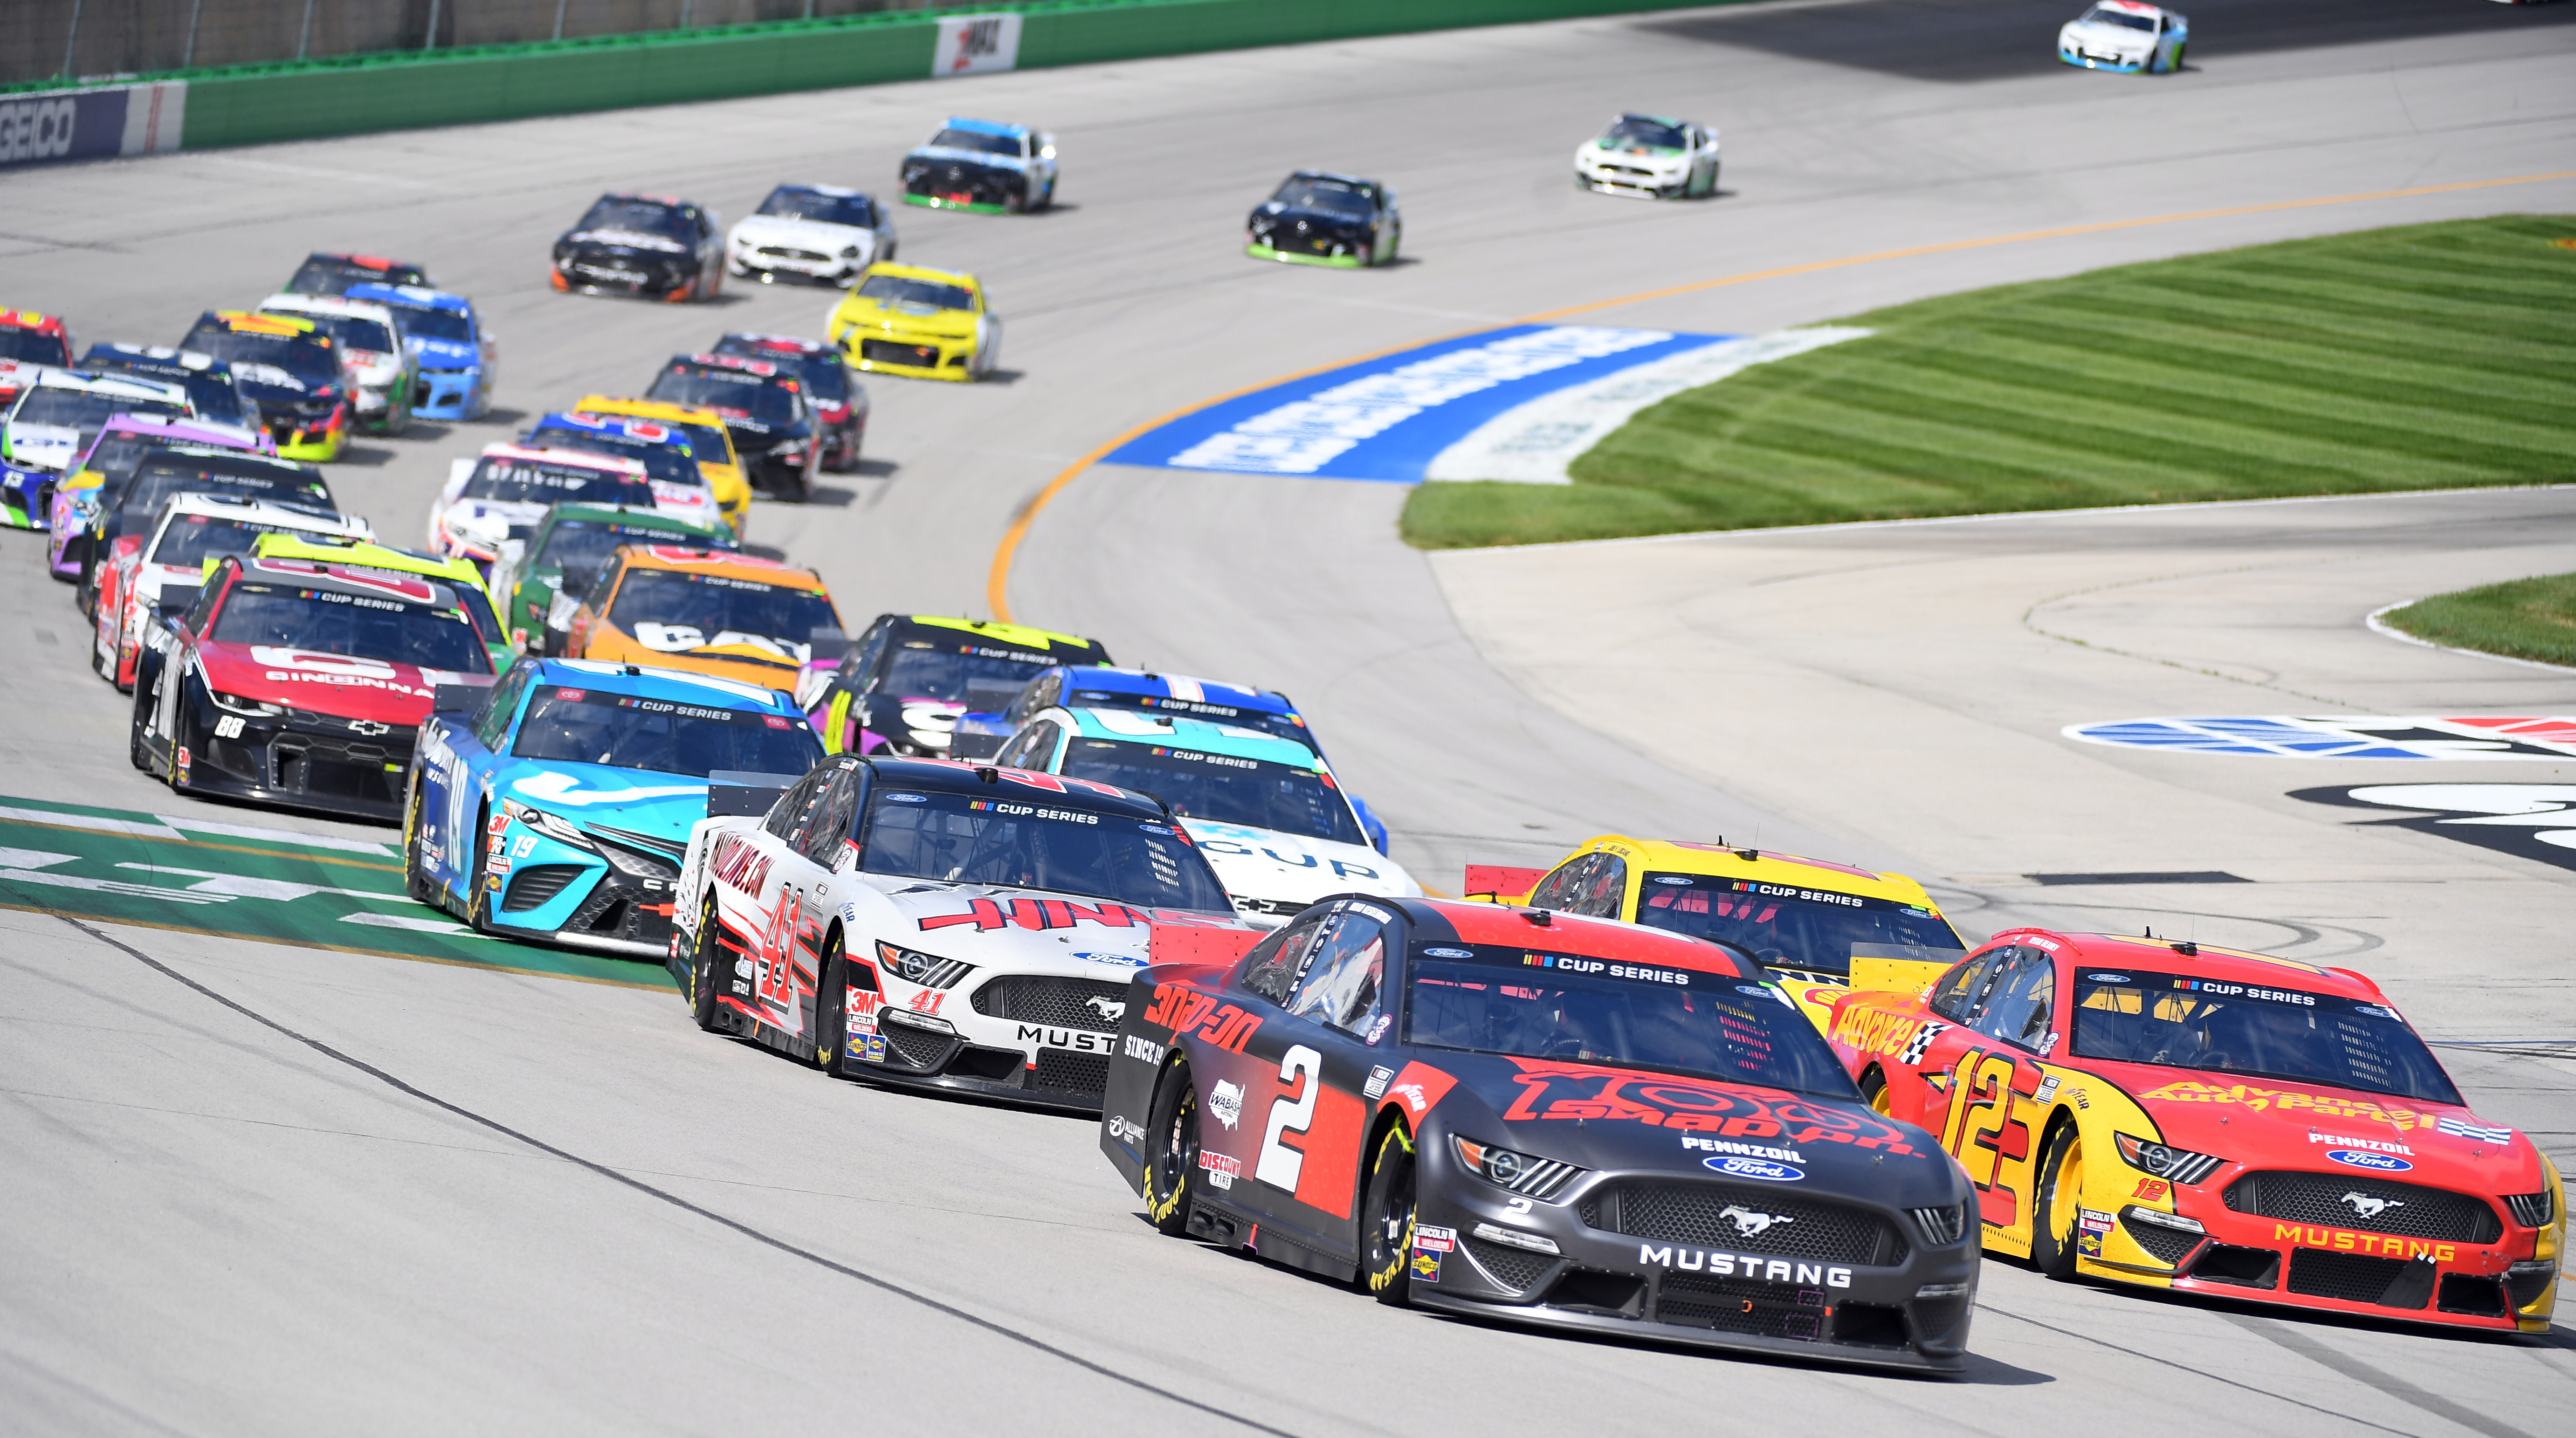 Monster Energy NASCAR Cup Series driver Brad Keselowski leads Monster Energy NASCAR Cup Series driver Ryan Blaney and Monster Energy NASCAR Cup Series driver Cole Custer on a restart during the Quaker State 400 at Kentucky Speedway.